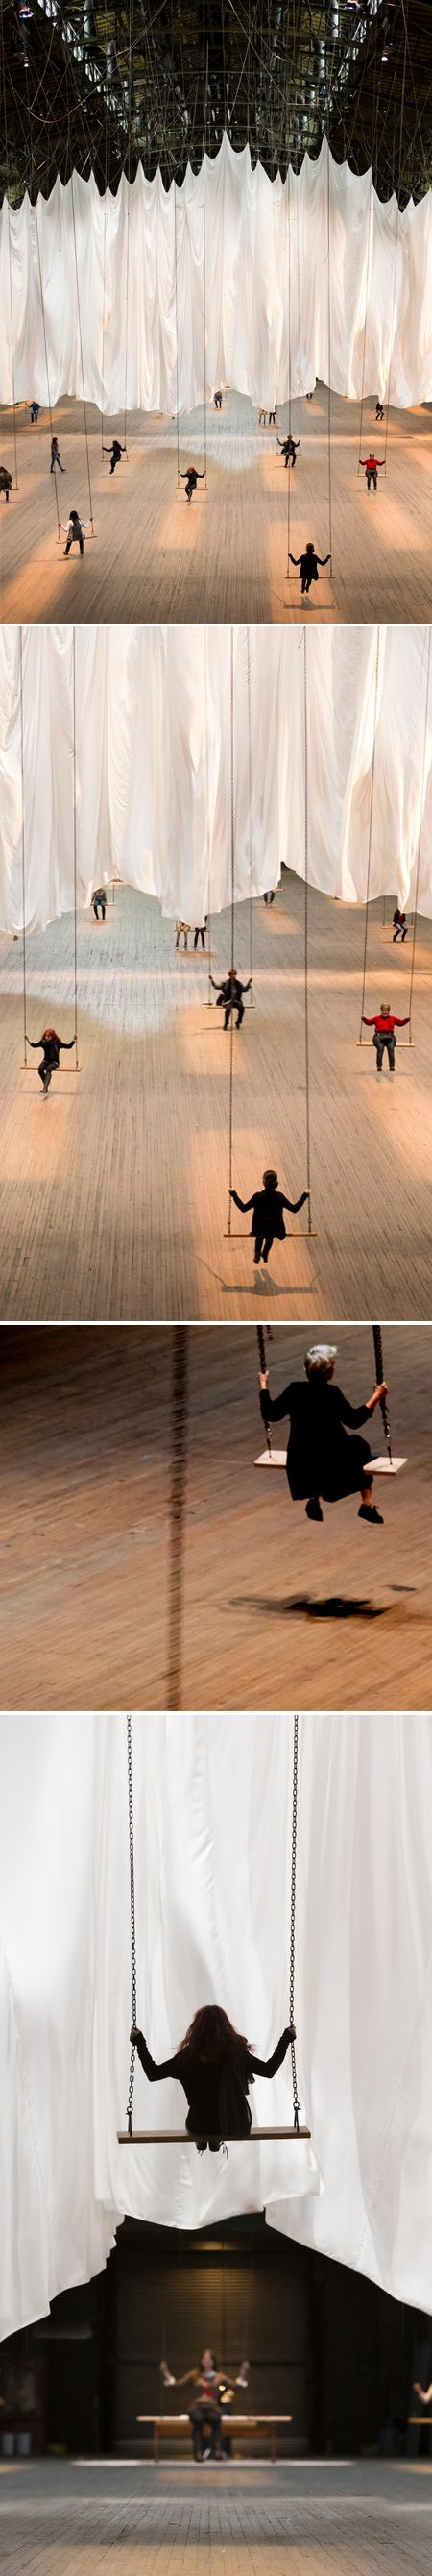 """The Event of a Thread"", Ann Hamilton. Now until January 6, 2013, Wade Thompson Drill Hall at the Park Avenue Armory"